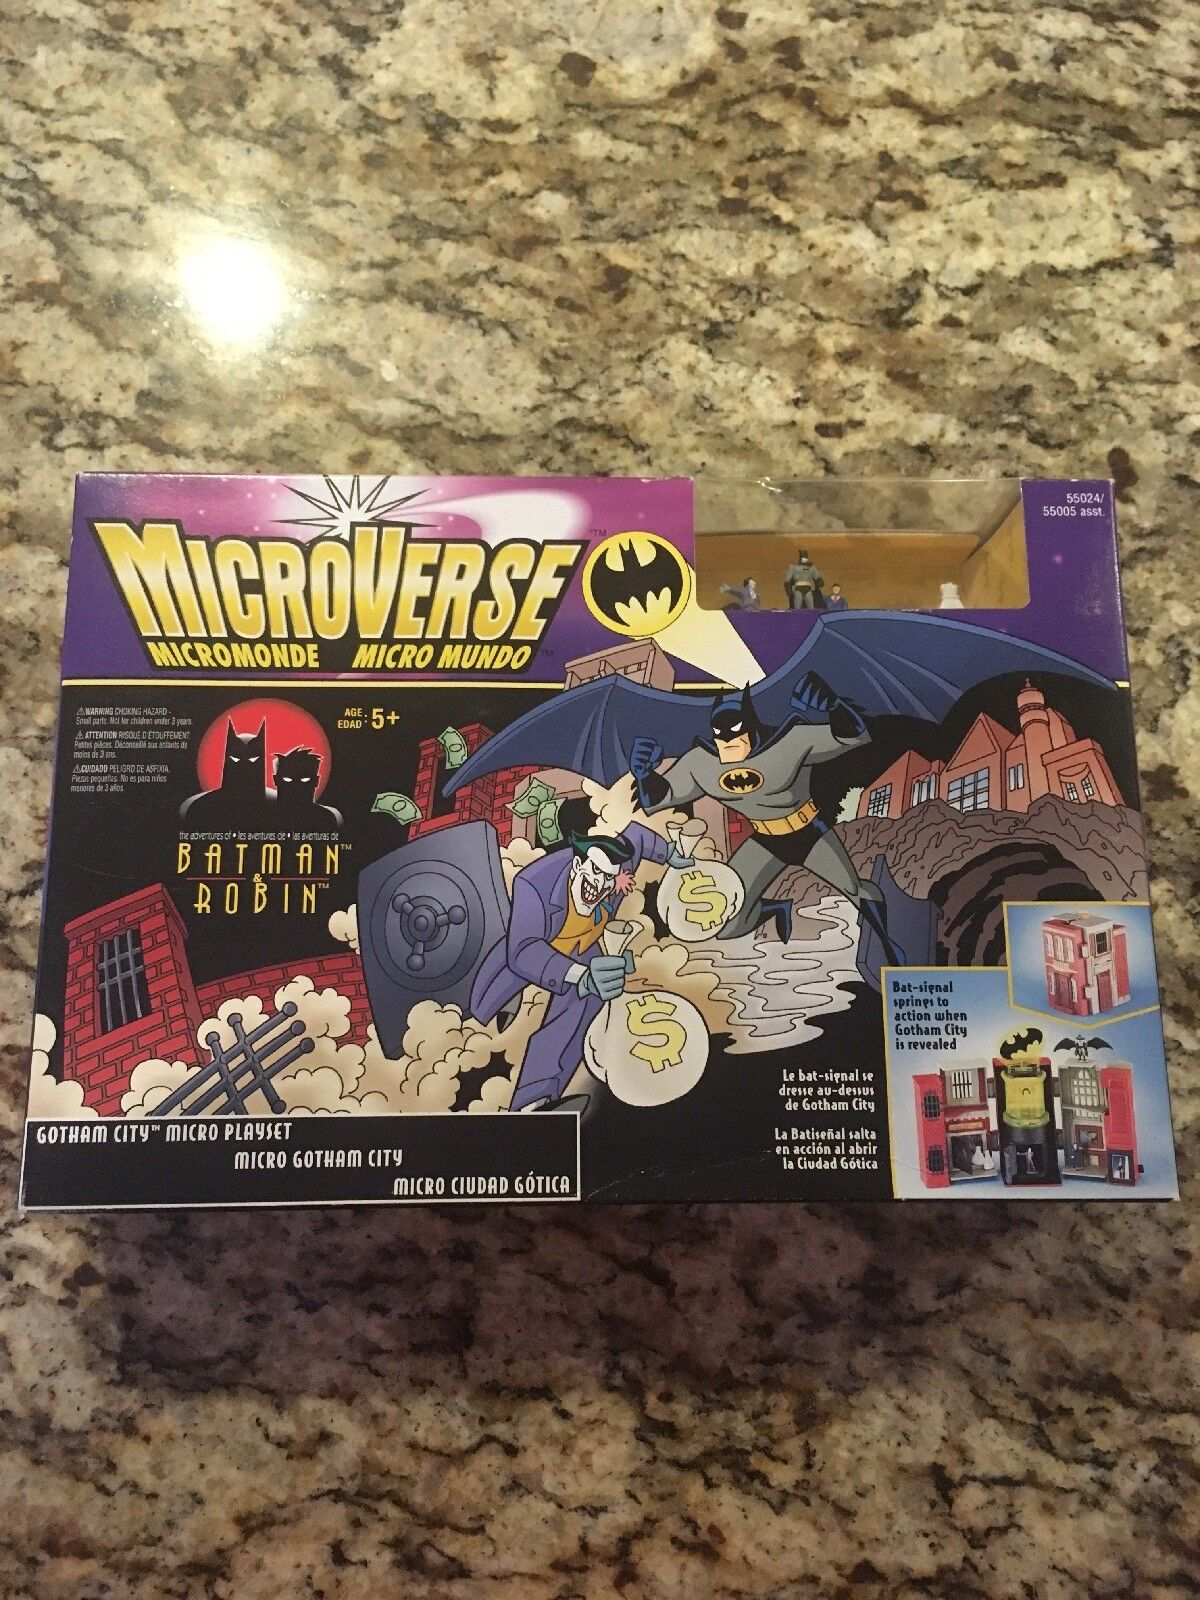 Batman und robin microverse gotham city 1996 new in box.mikro - playset